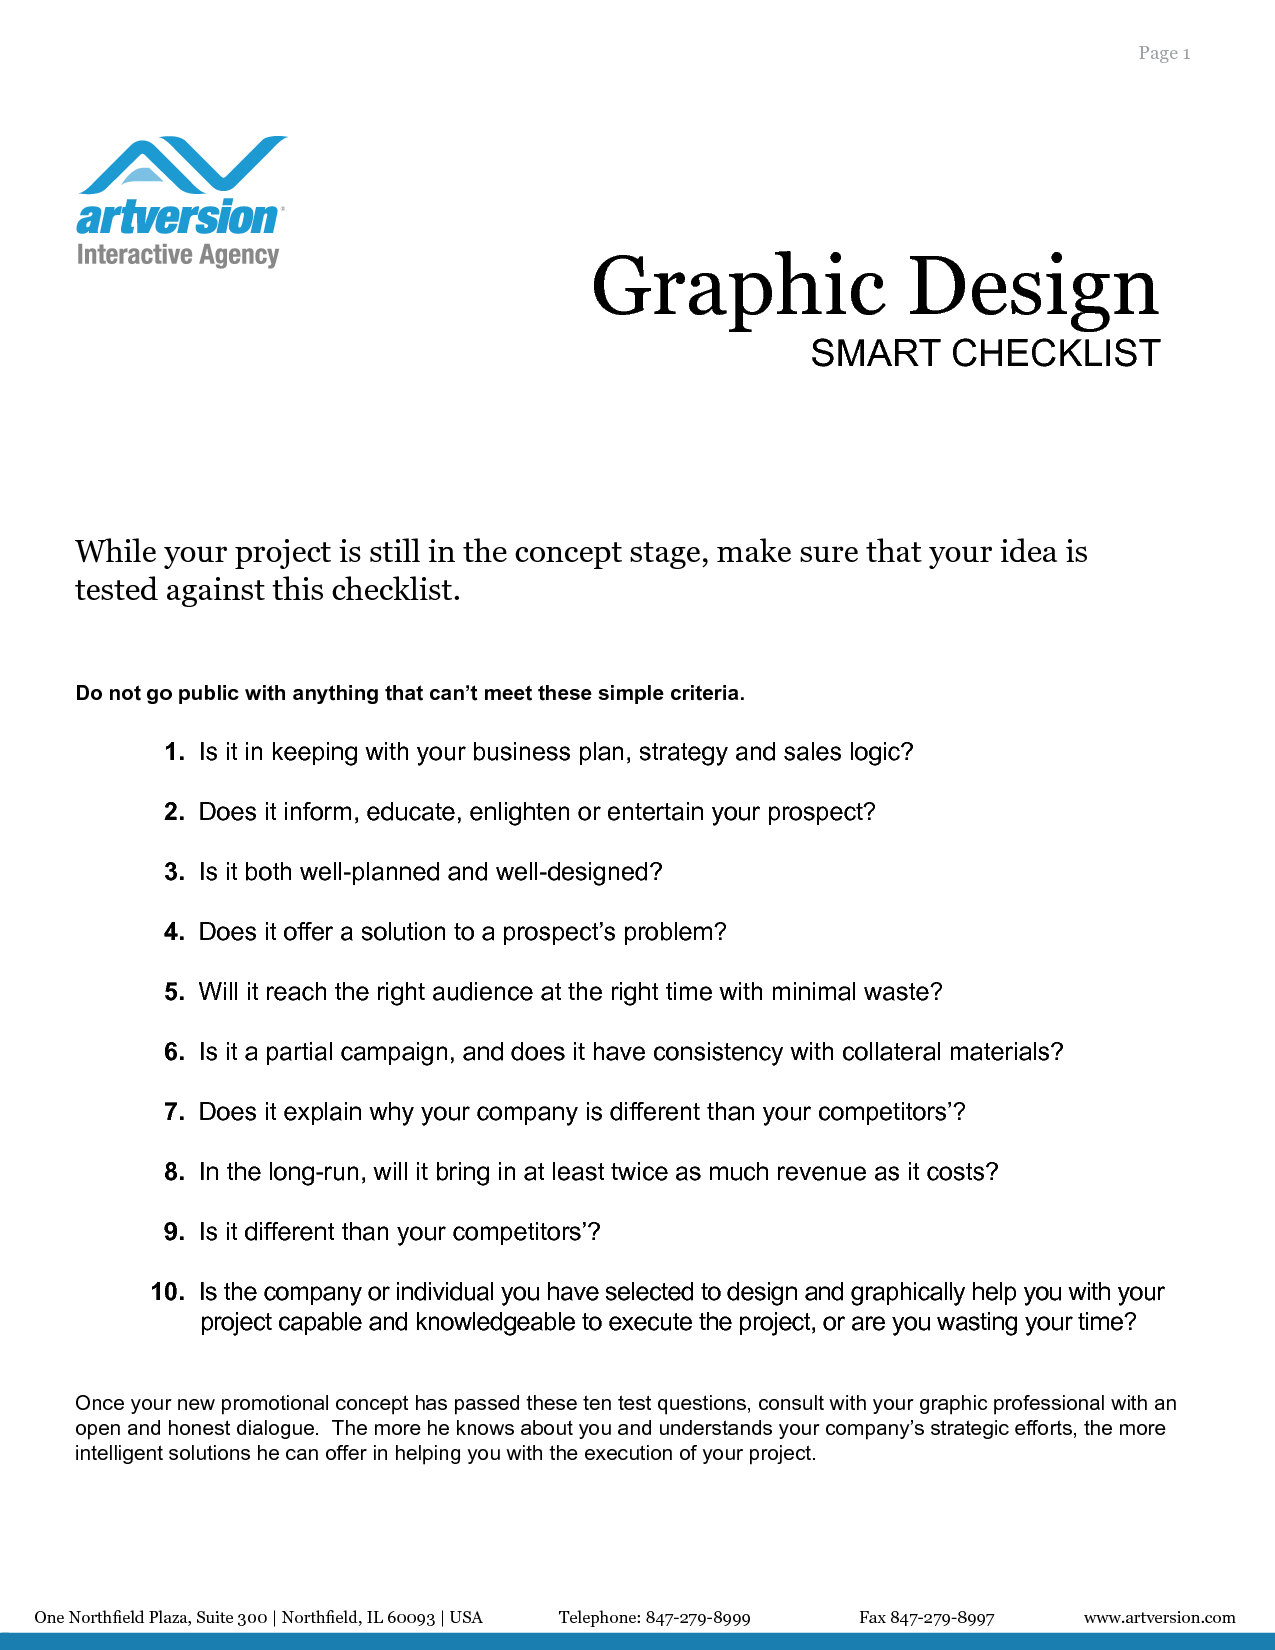 Graphic Design Project Checklist  Inspiration